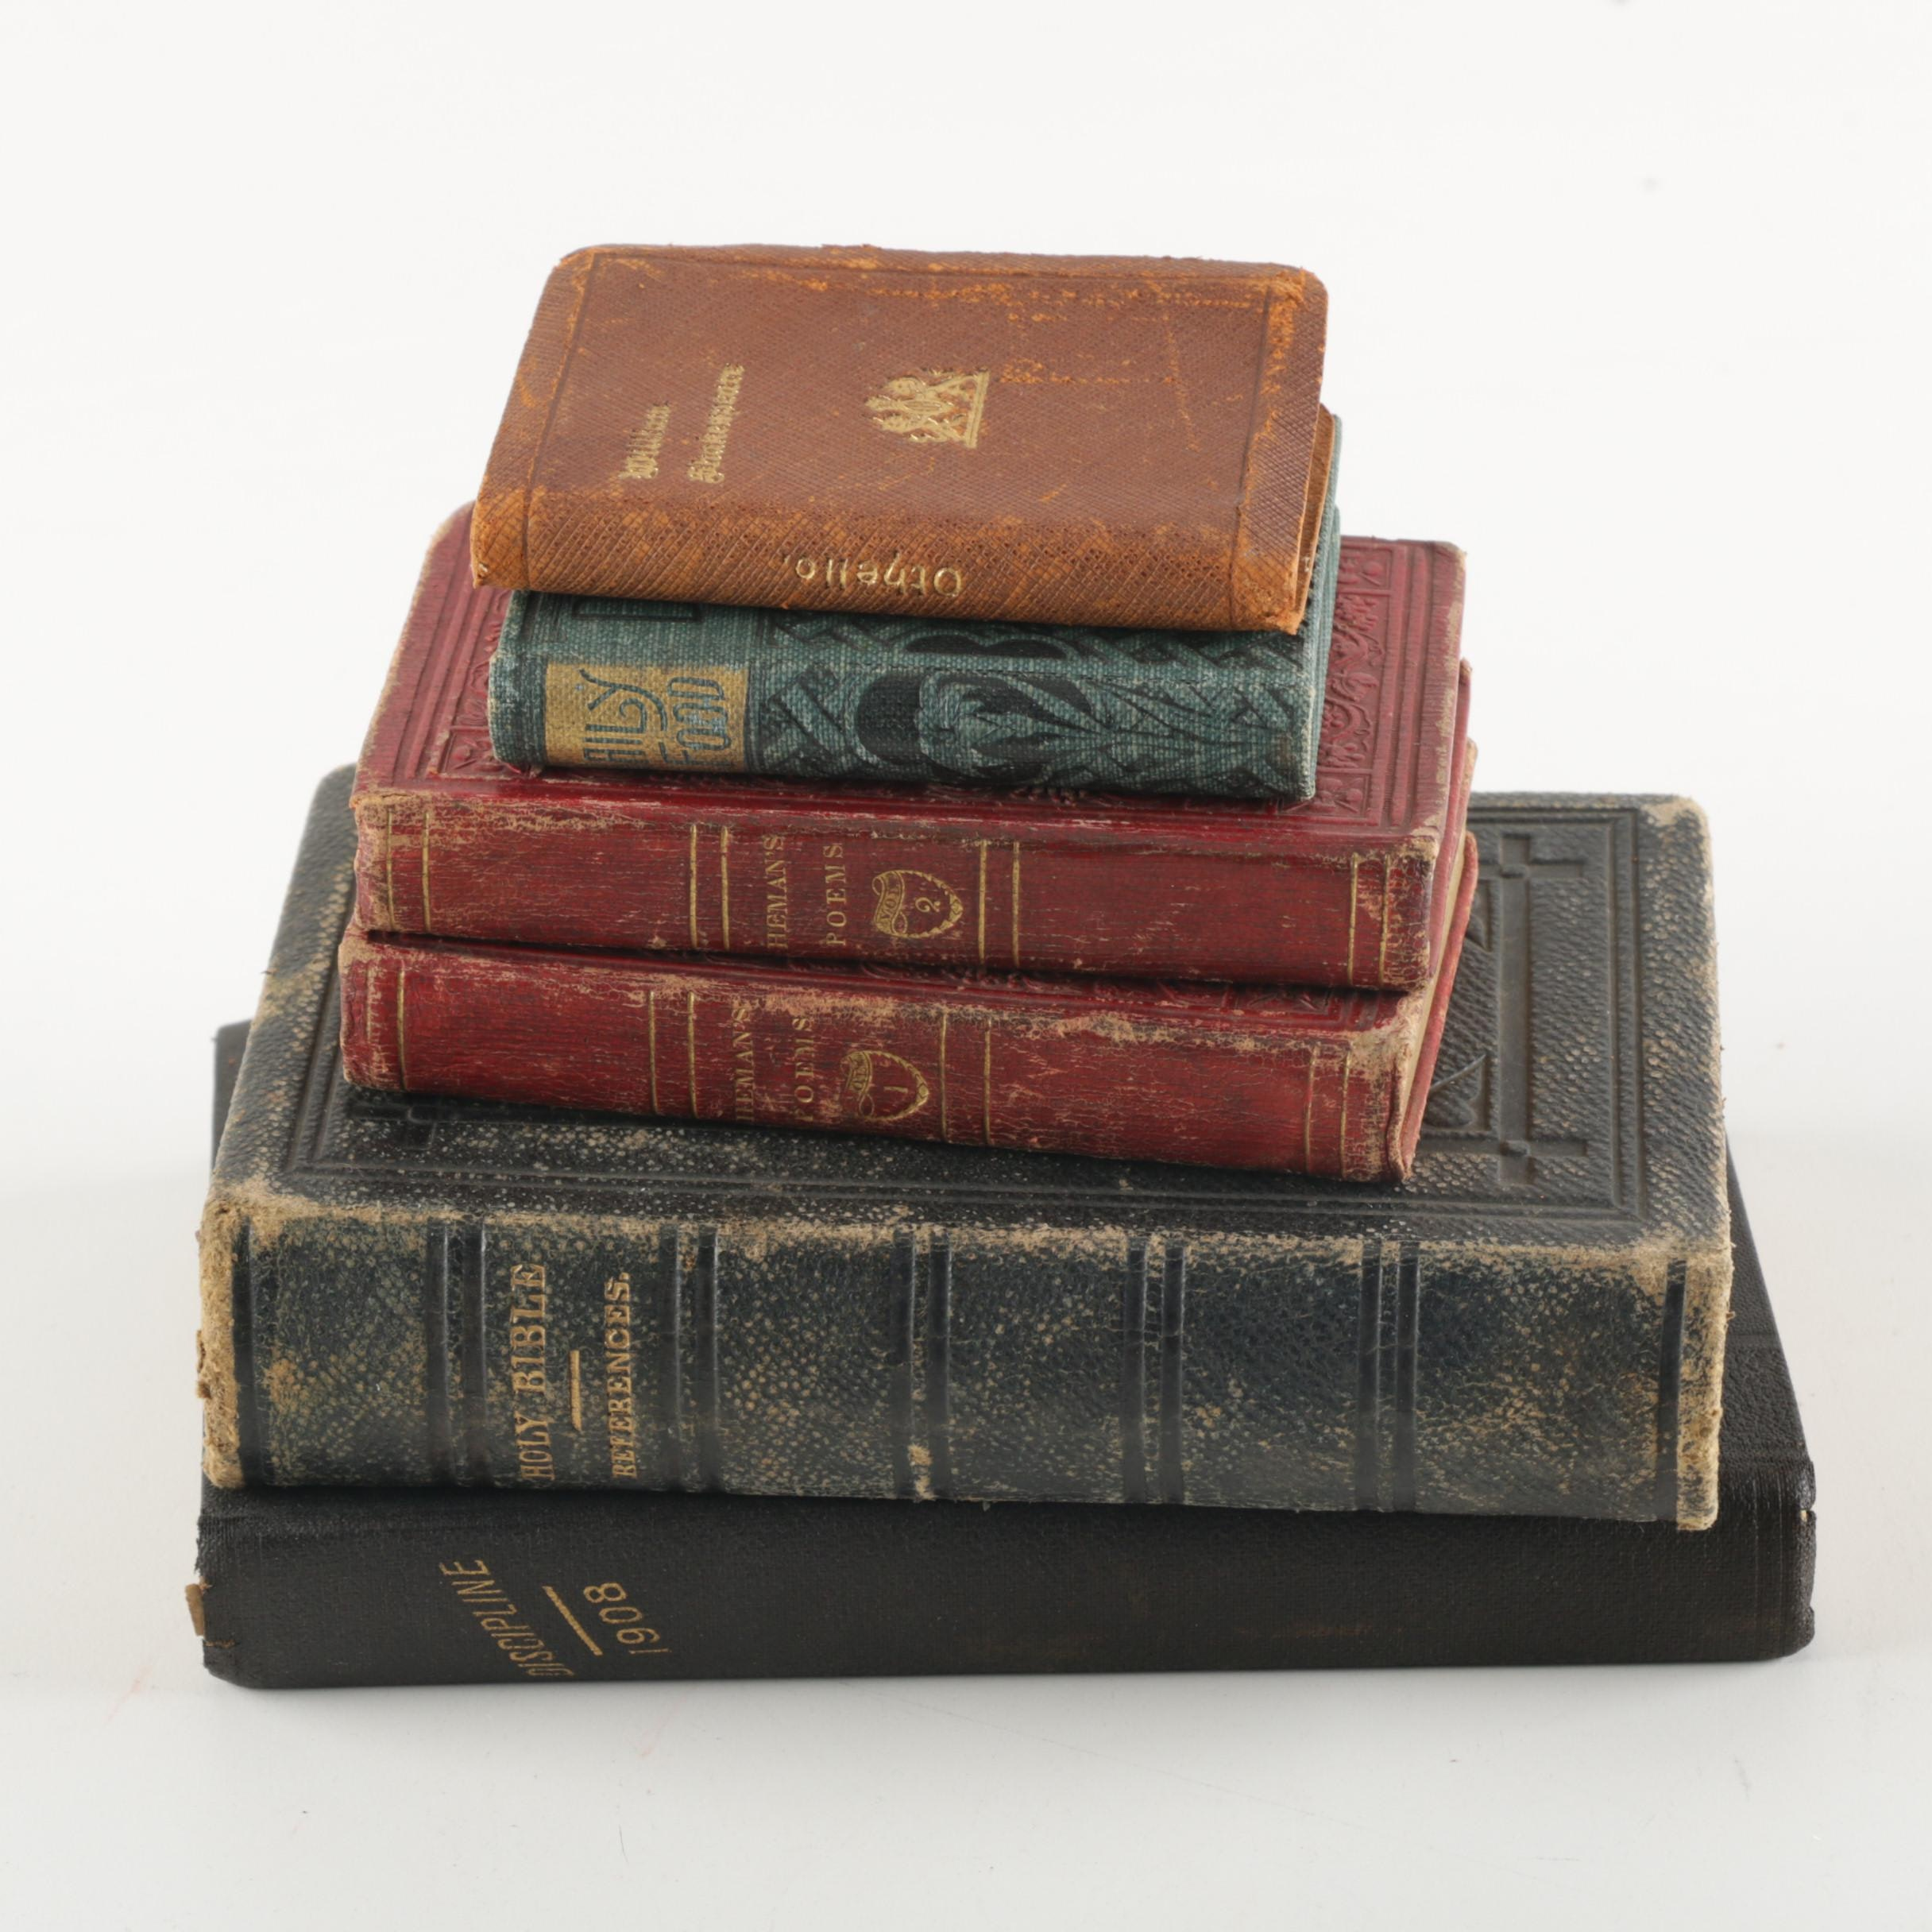 Antique Poetry and Religious Books